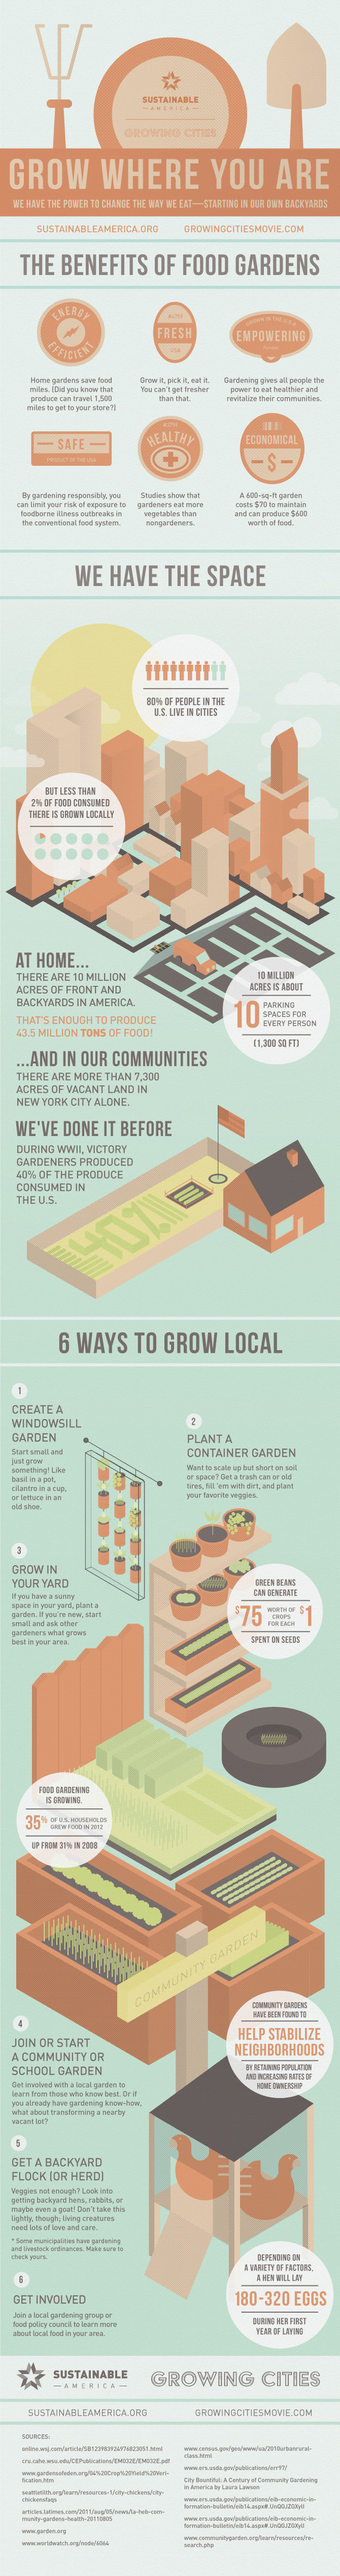 Urban_Ag_Infographic-001